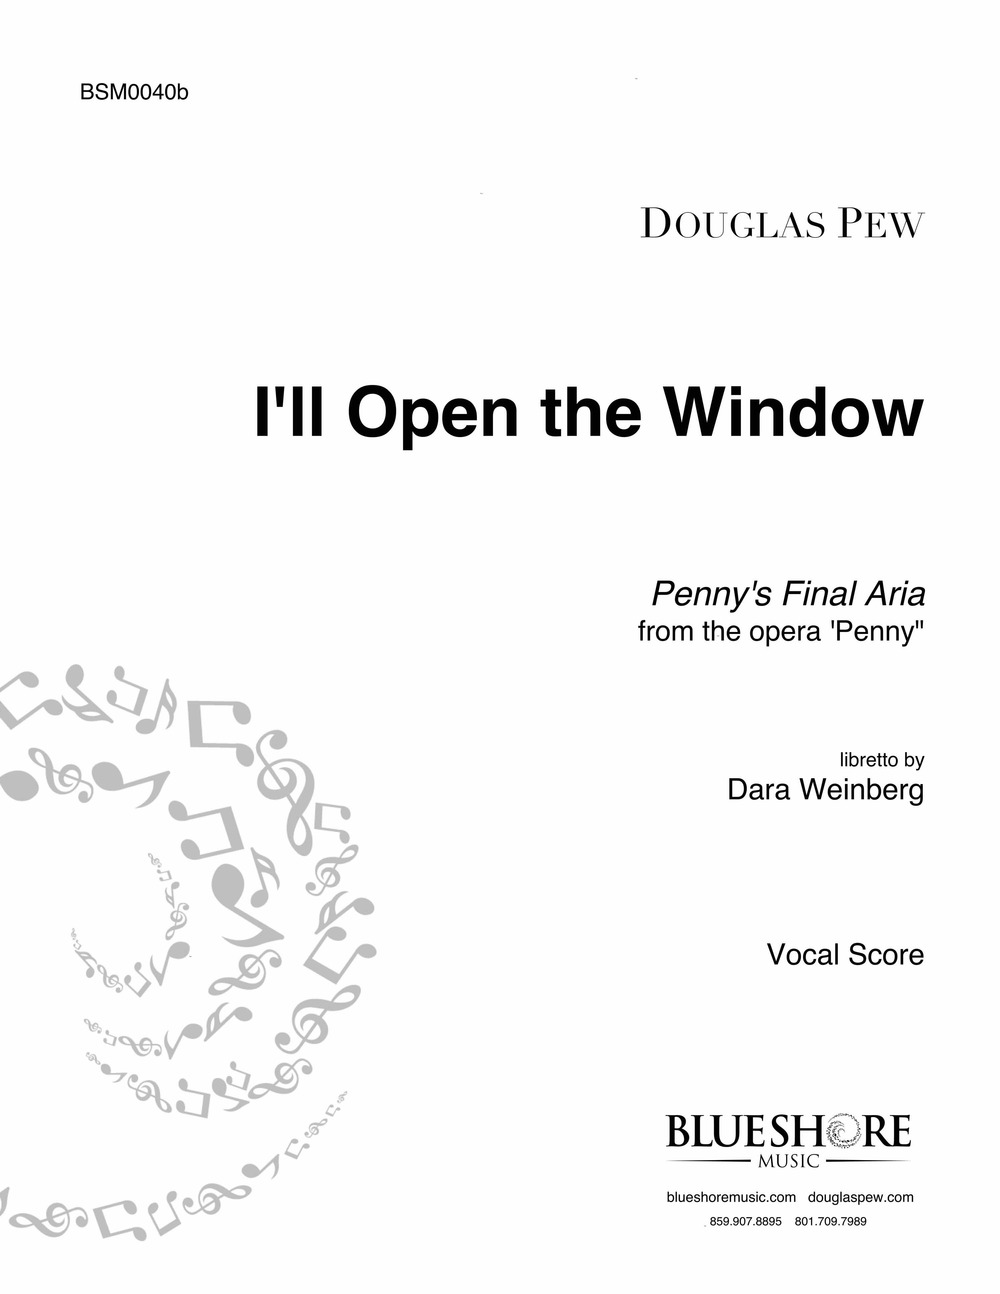 I'll Open the Window - Penny's Final Aria (mezzo-soprano) from the opera 'PENNY' (forthcoming)